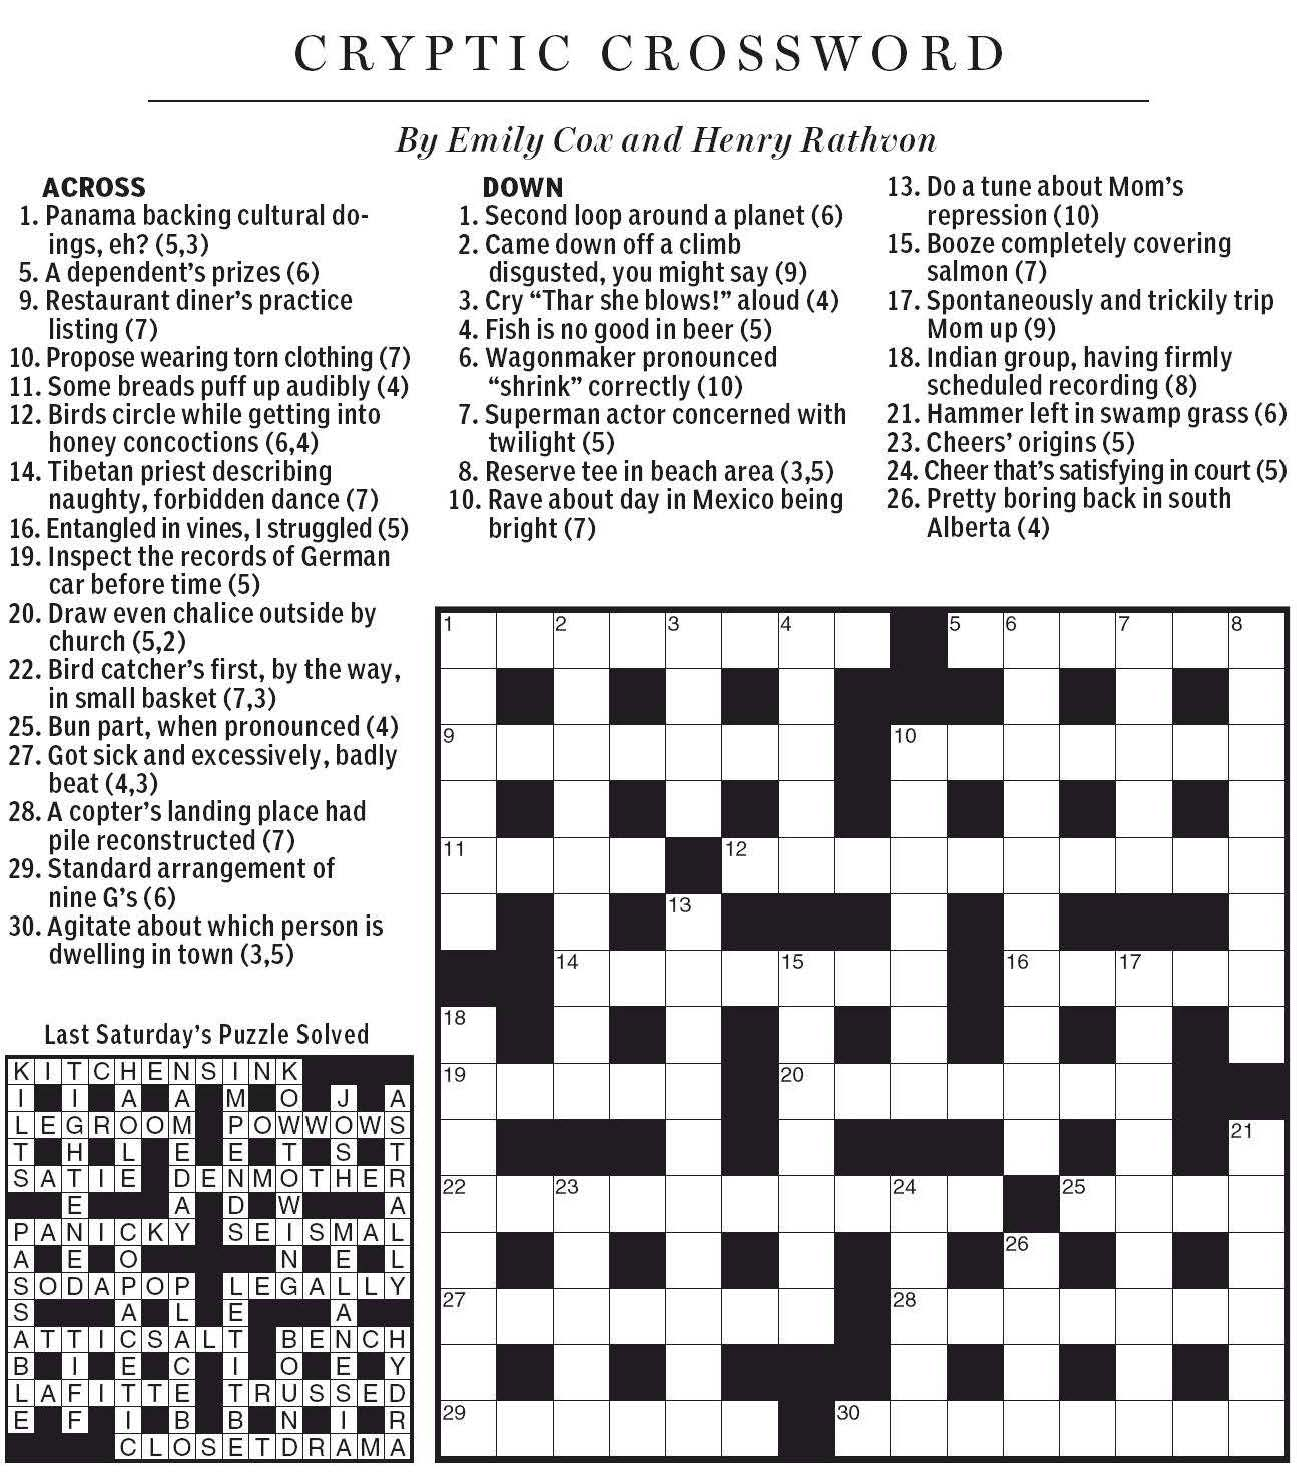 National post cryptic crossword forum saturday september 1 2012